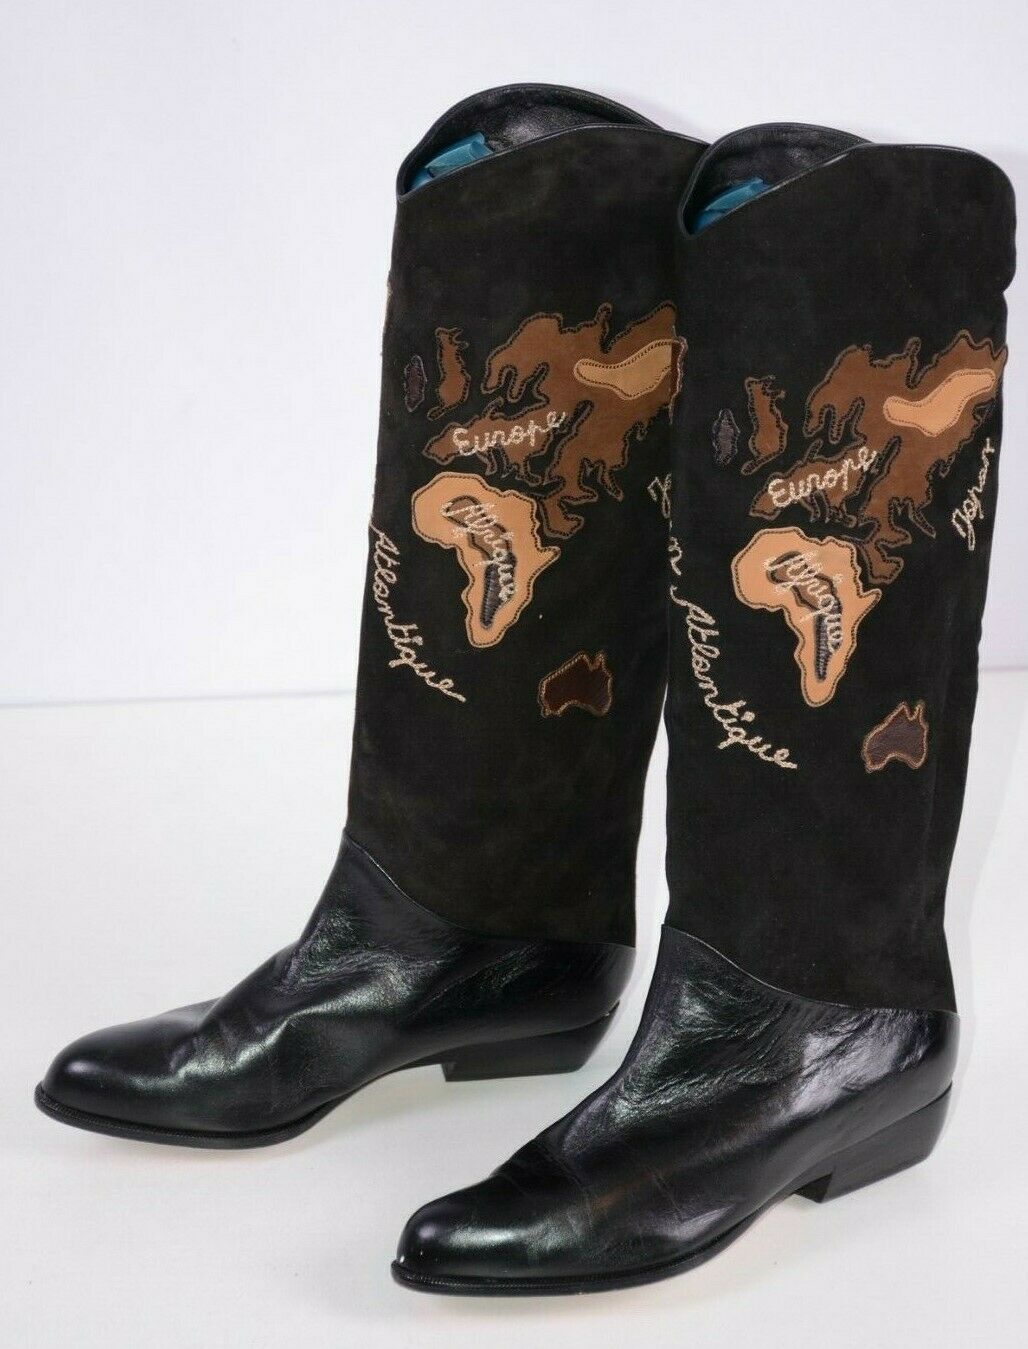 Jean Claude Jitrois Women's Boots Sz 37  Embroidered Black World Map 6.5-7